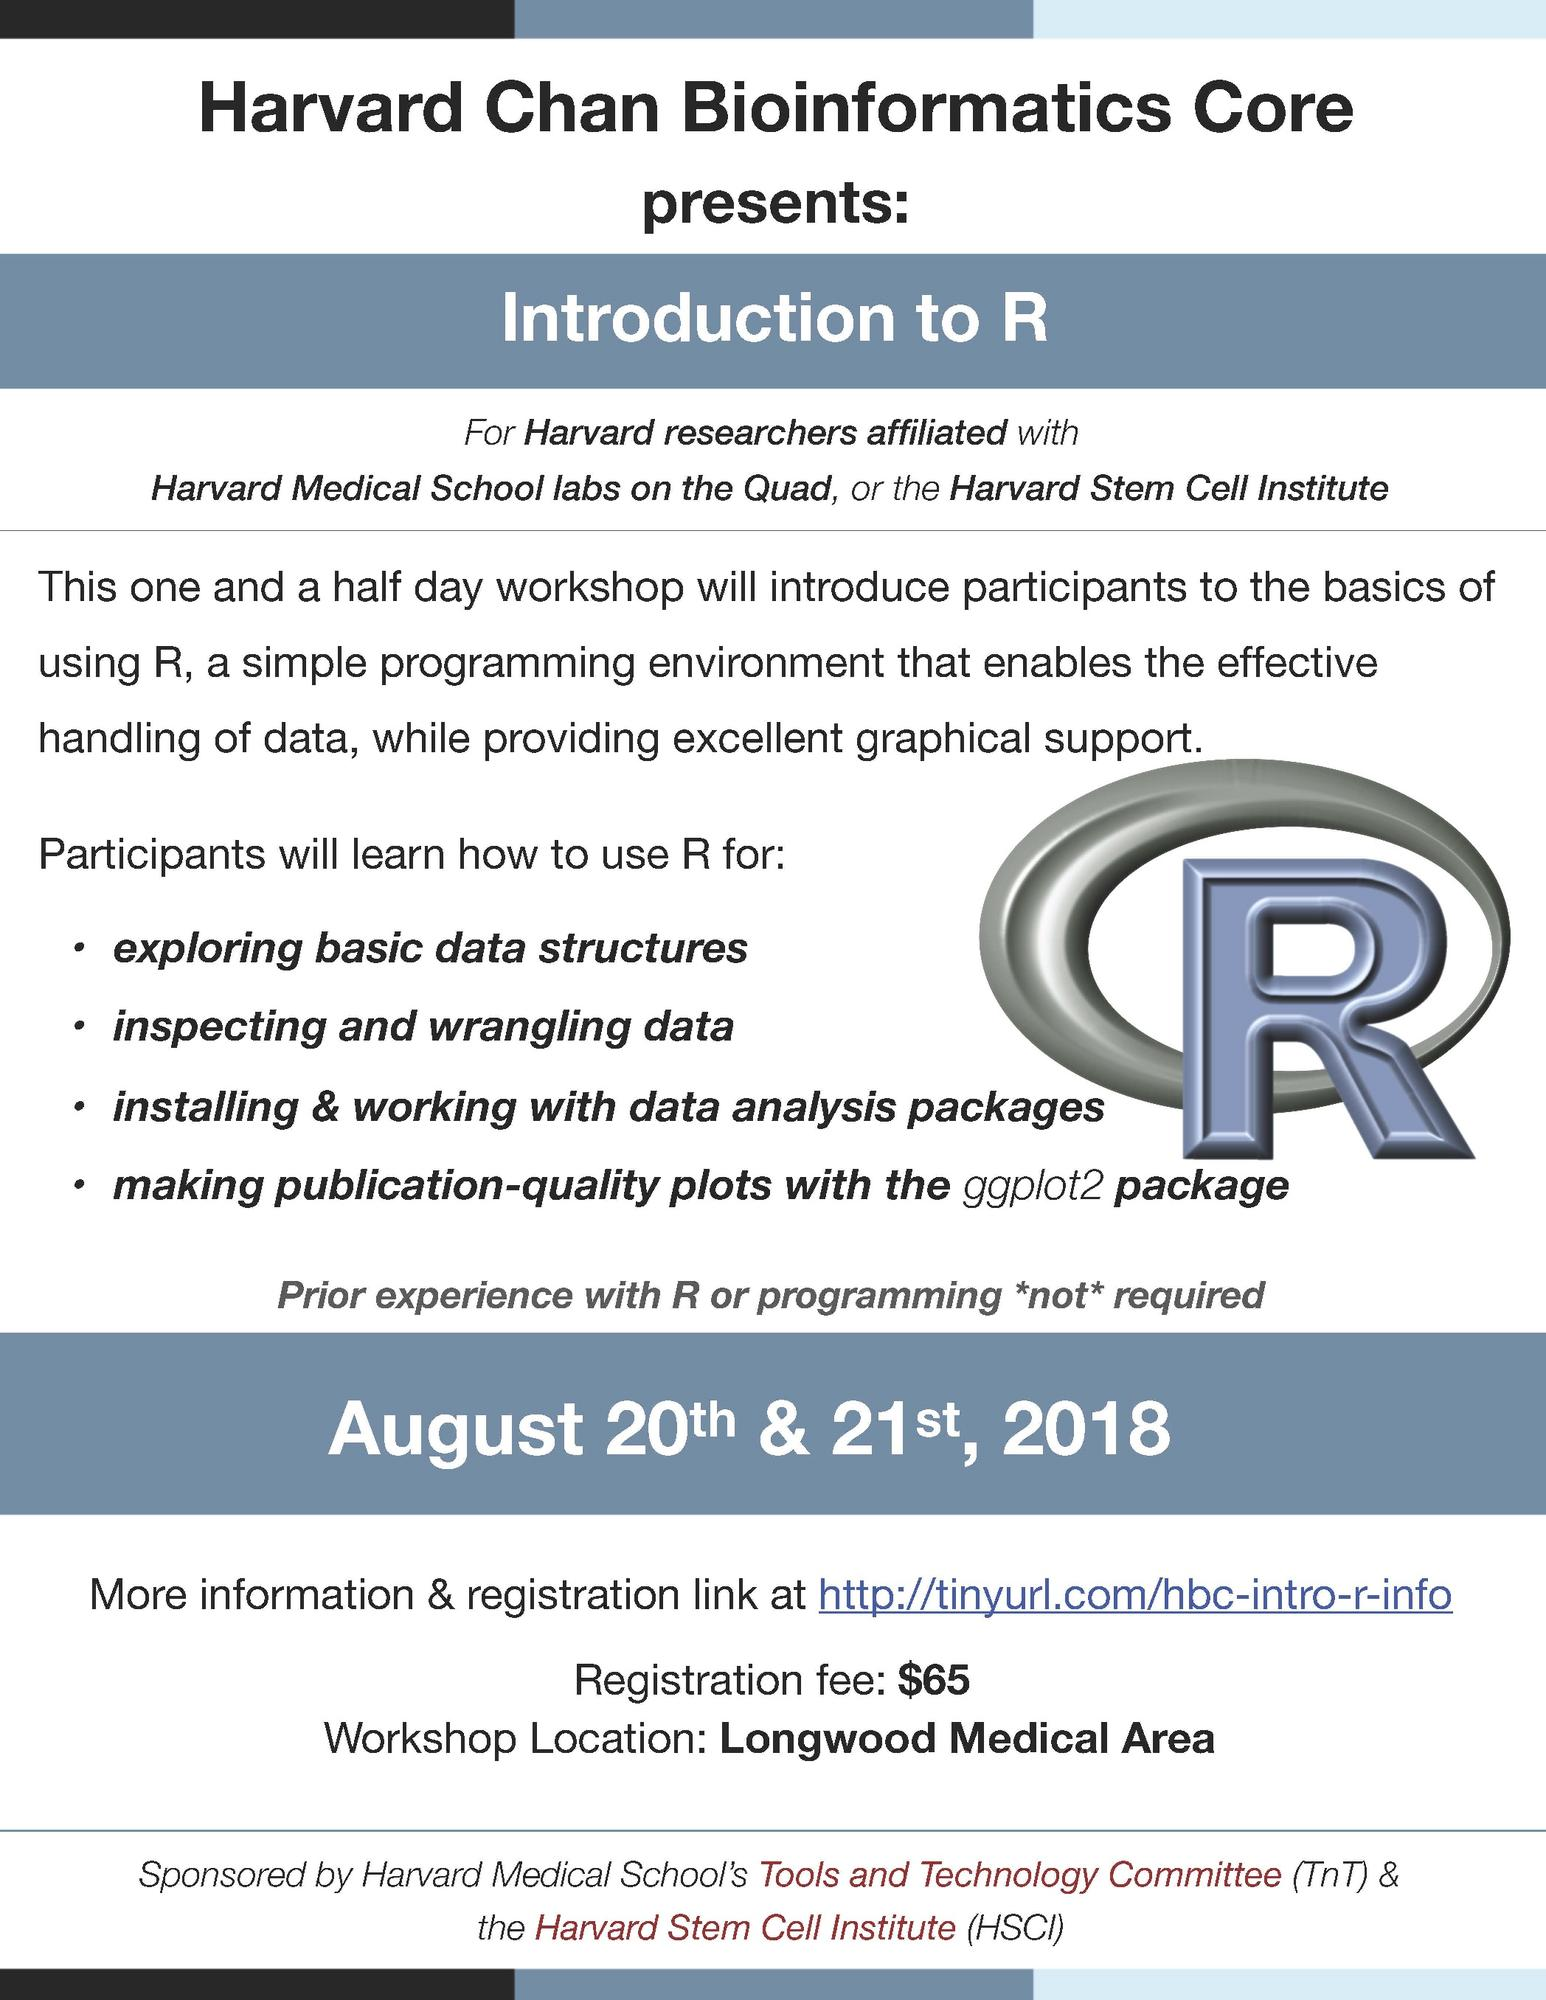 R Course announcement image